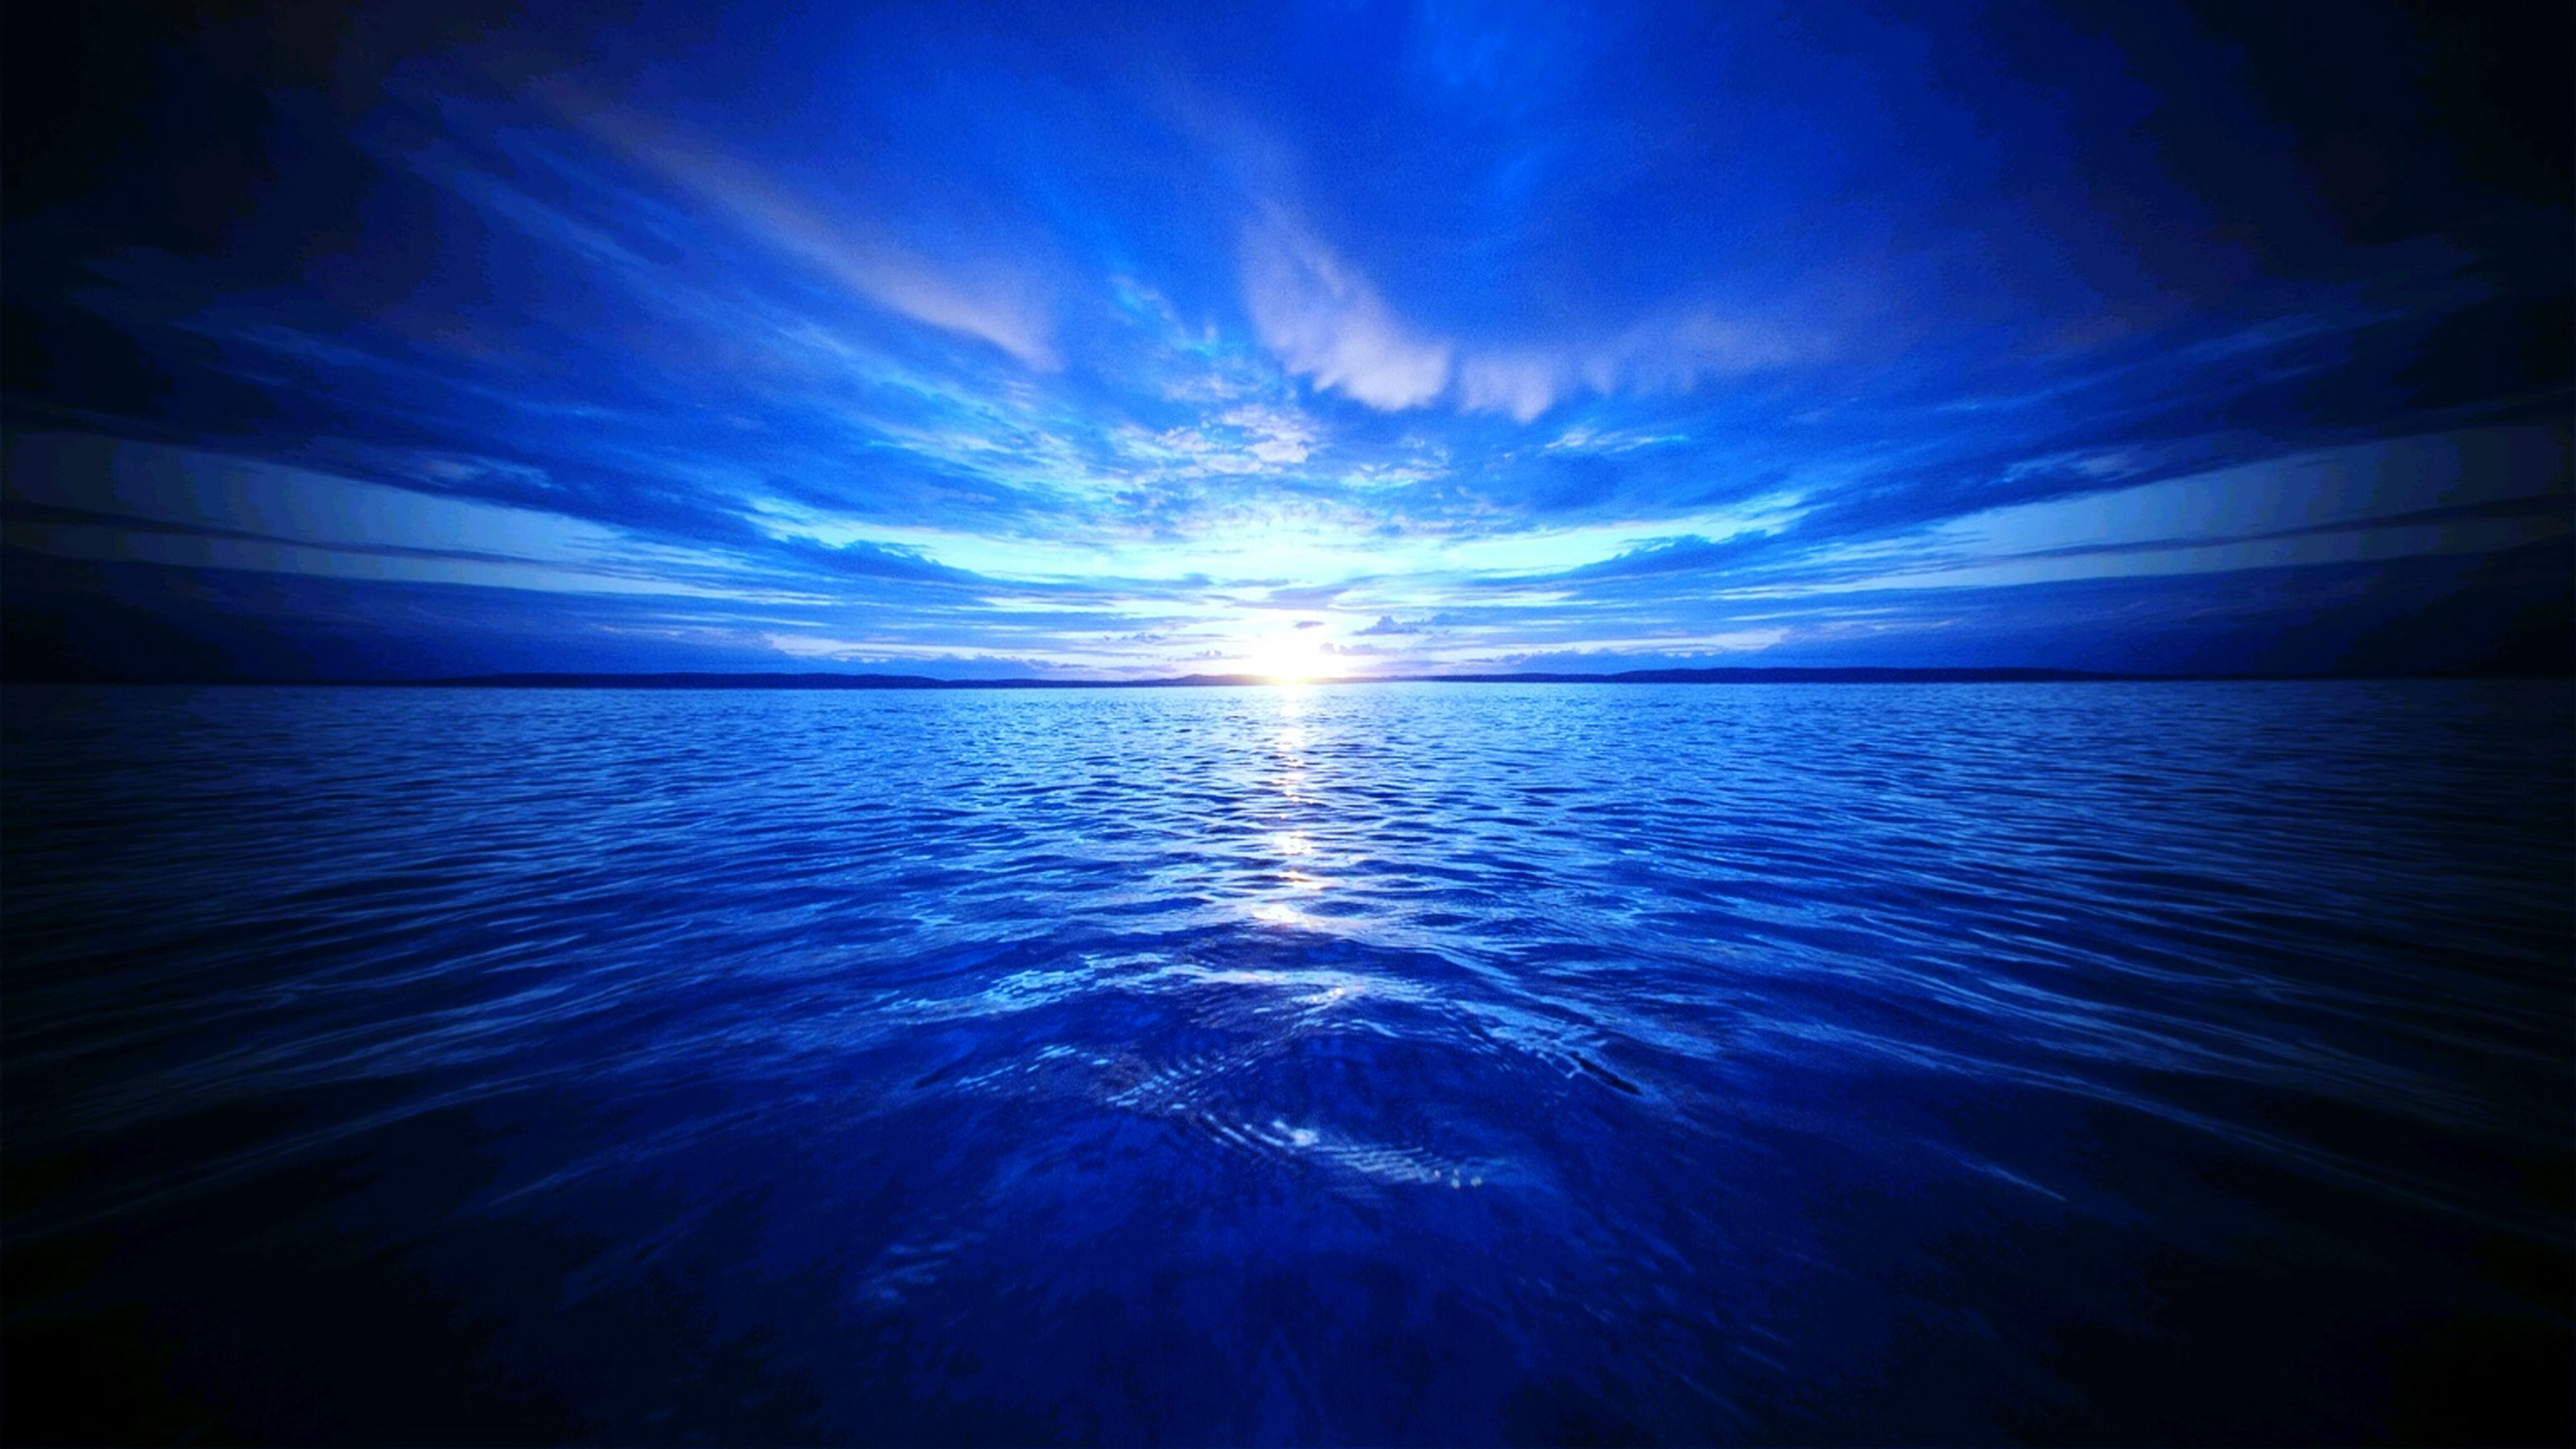 water, sea, scenics, sky, tranquil scene, beauty in nature, tranquility, waterfront, horizon over water, blue, nature, idyllic, reflection, cloud - sky, sunset, rippled, seascape, sunlight, cloud, sun